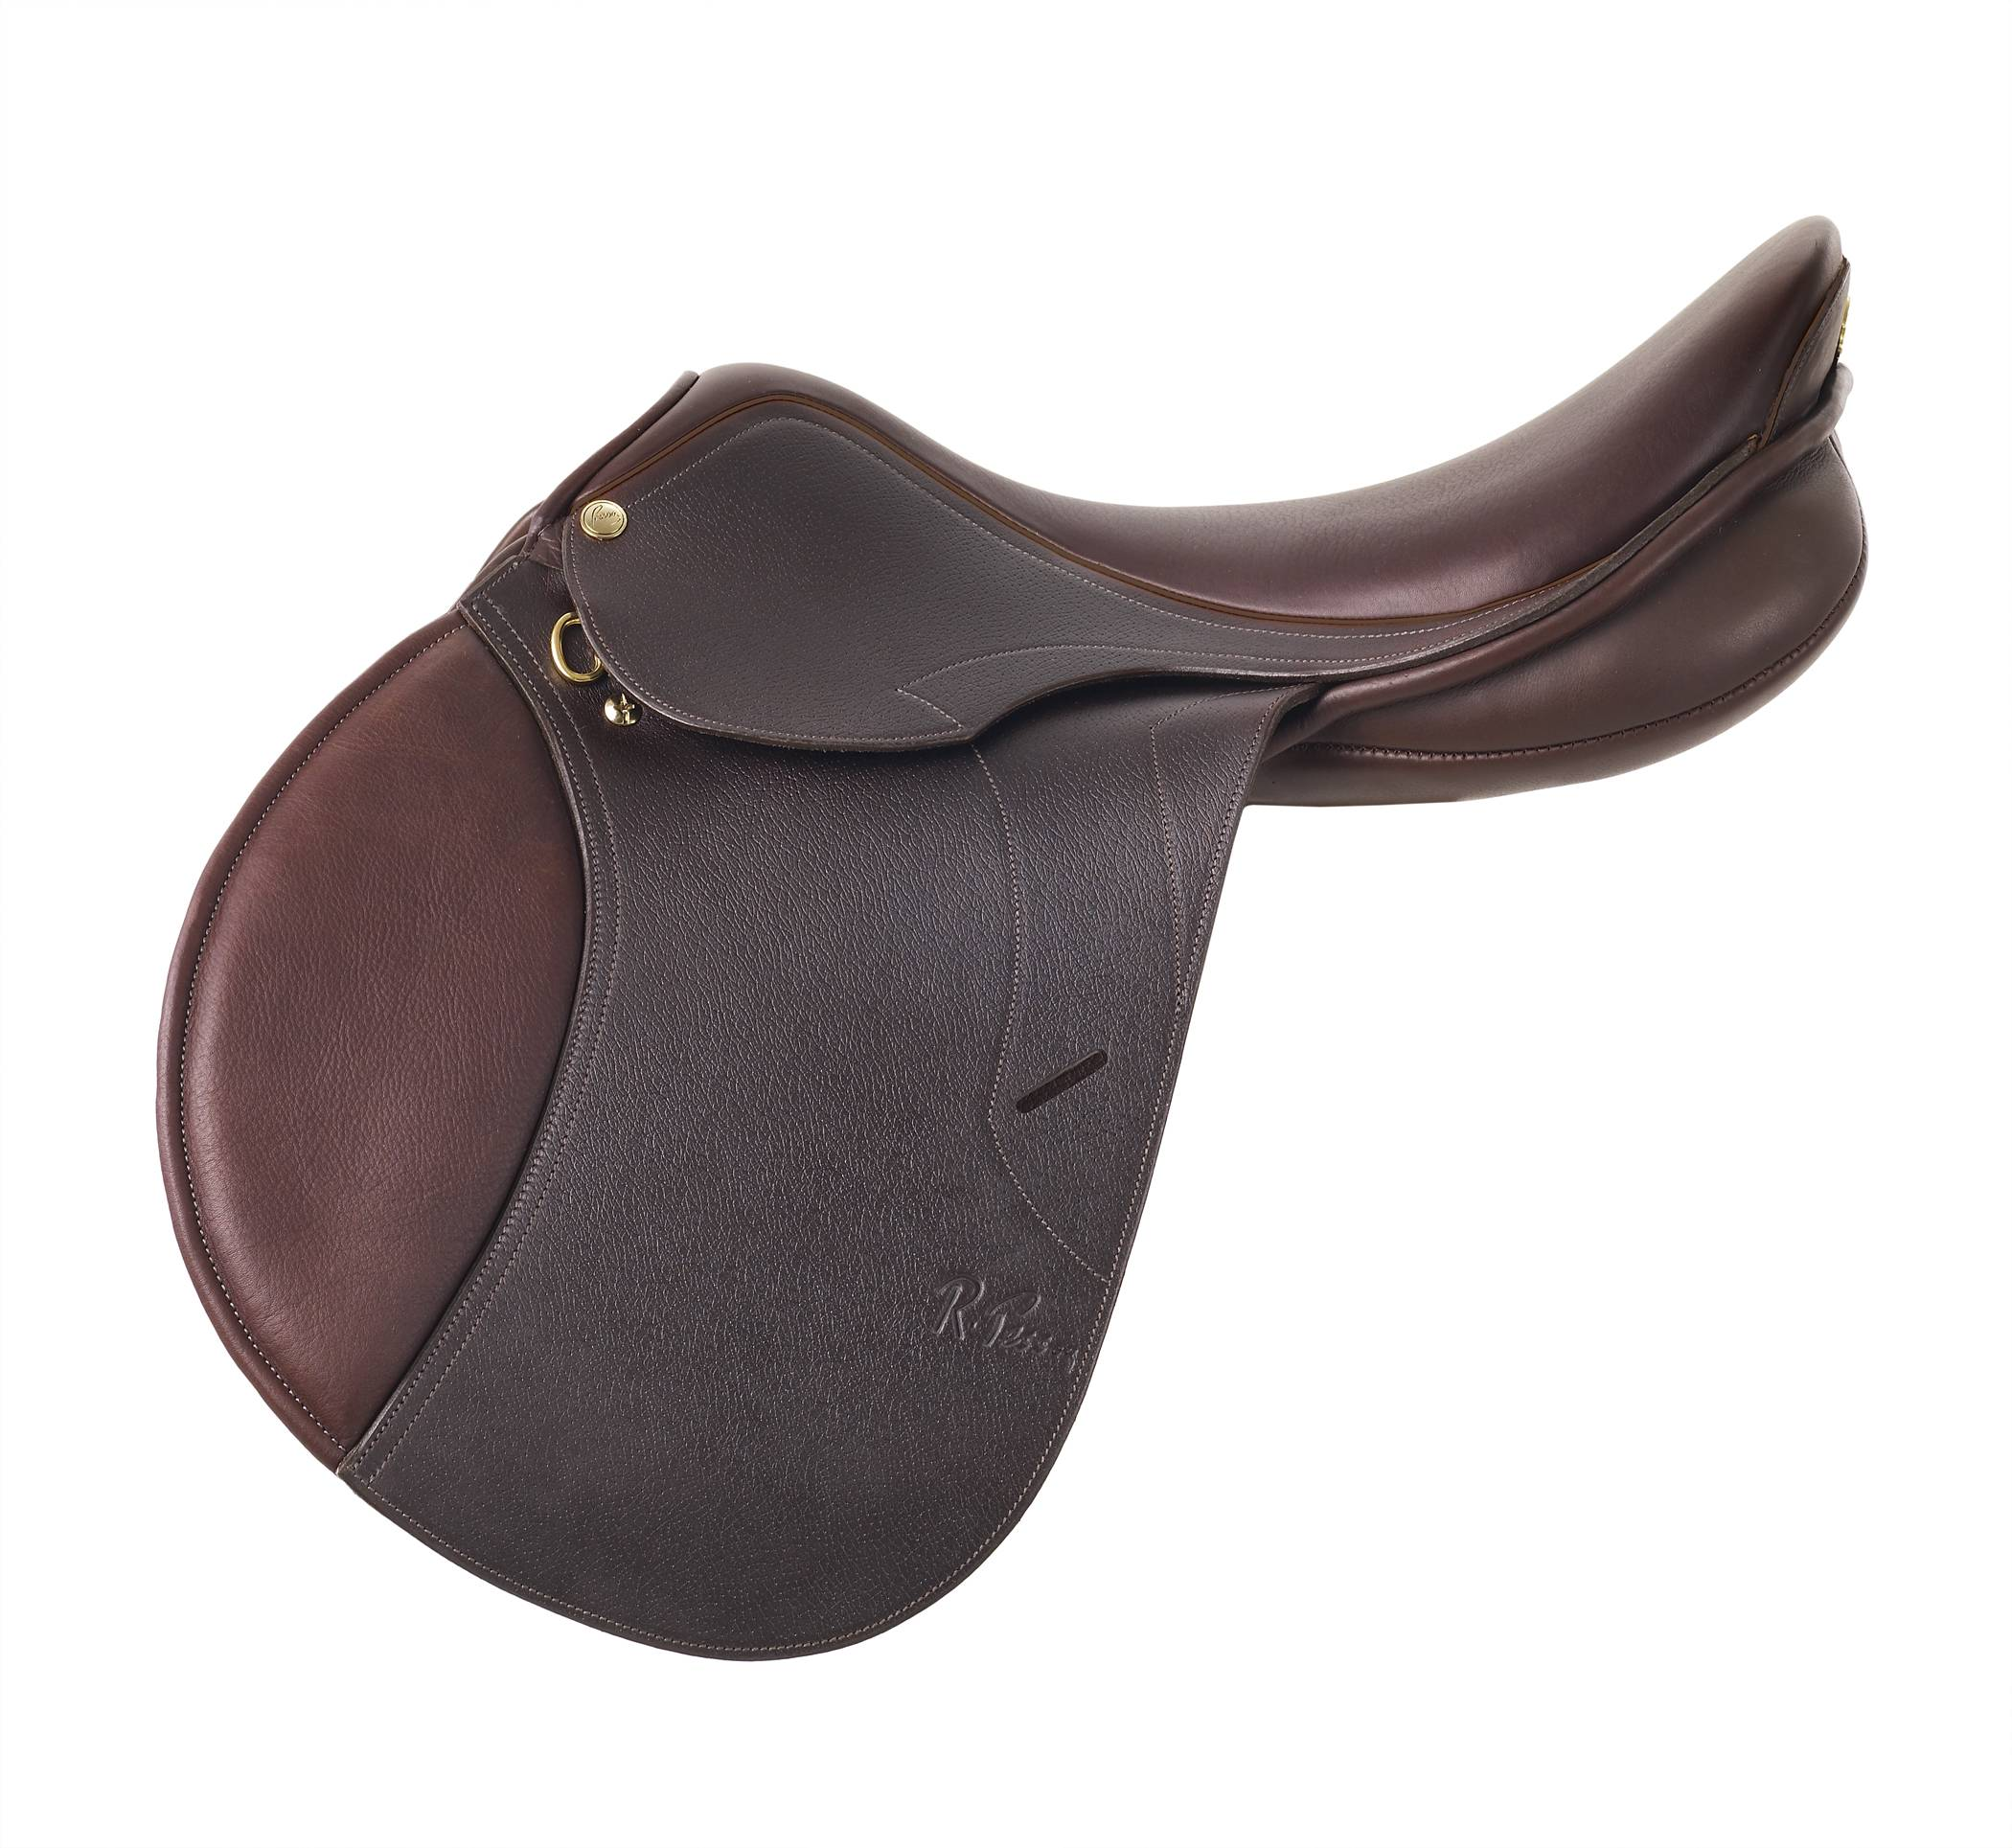 Pessoa Gen-X Elita All Purpose Saddle